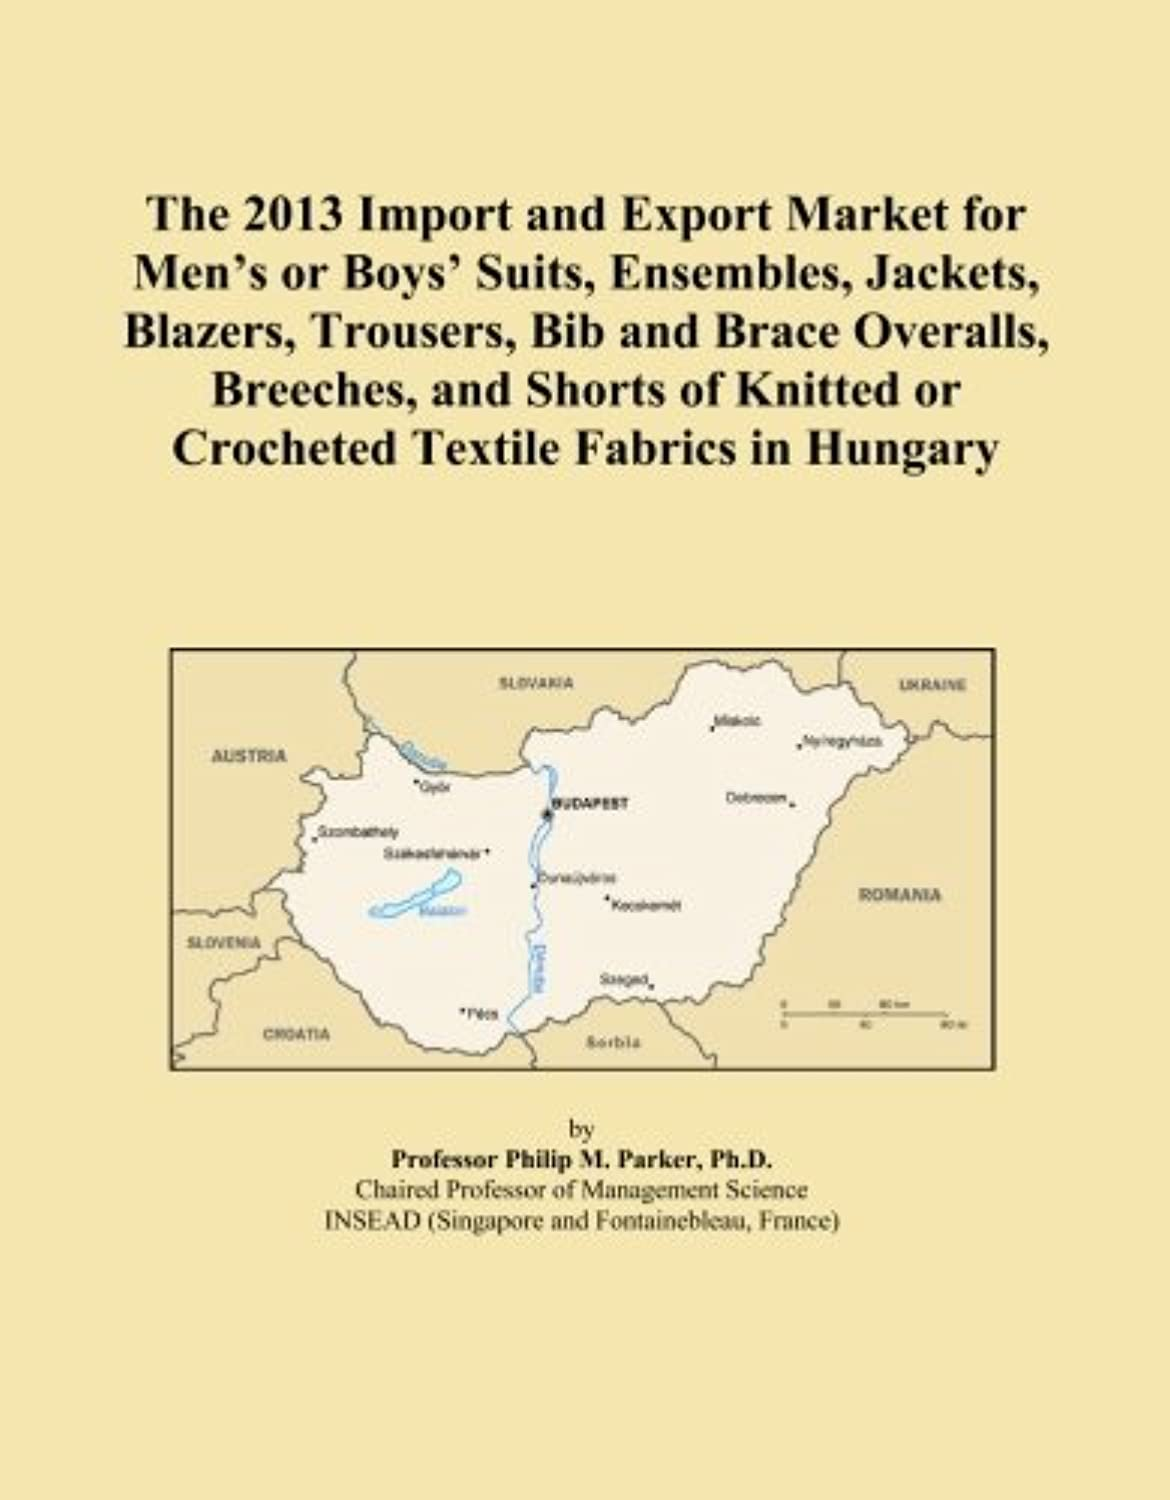 The 2013 Import and Export Market for Men's or Boys' Suits, Ensembles, Jackets, Blazers, Trousers, Bib and Brace Overalls, Breeches, and Shorts of Knitted or Crocheted Textile Fabrics in Hungary